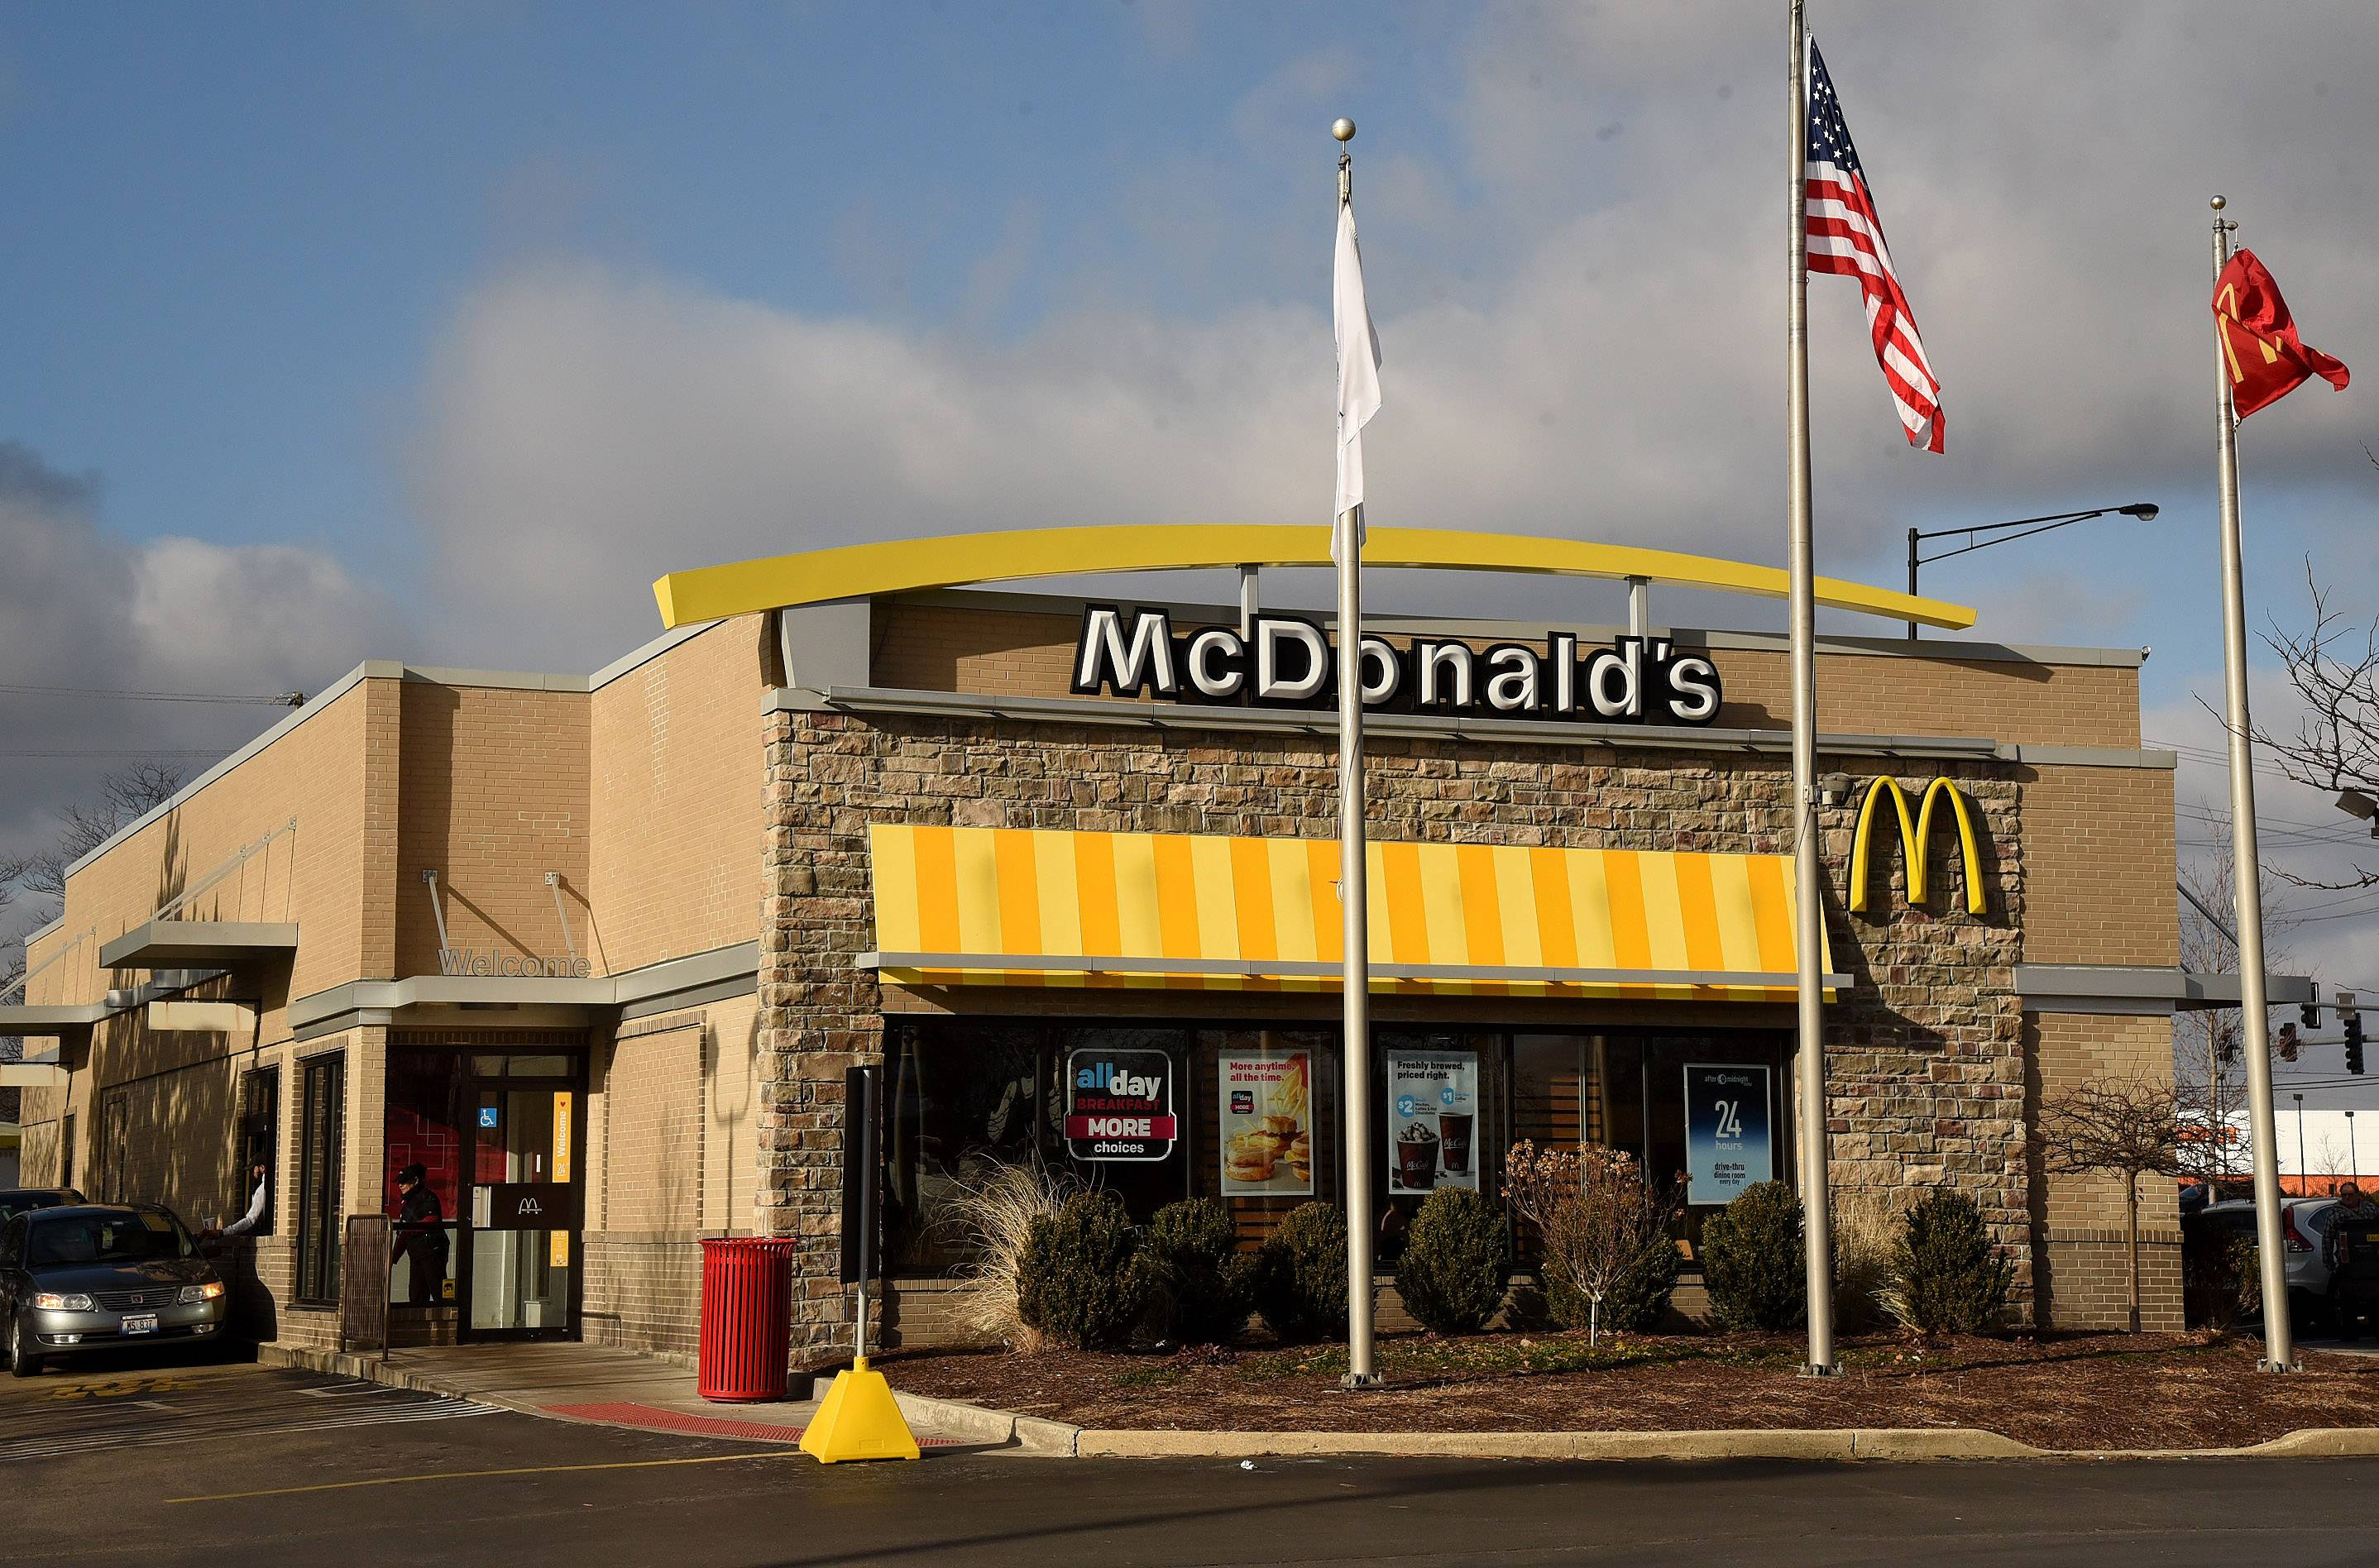 The victim's mother in Facebook torture case dropped off her 18-year-old son at a Schaumburg McDonald's to meet Jordan Hill at 1:30 p.m. Dec. 31.